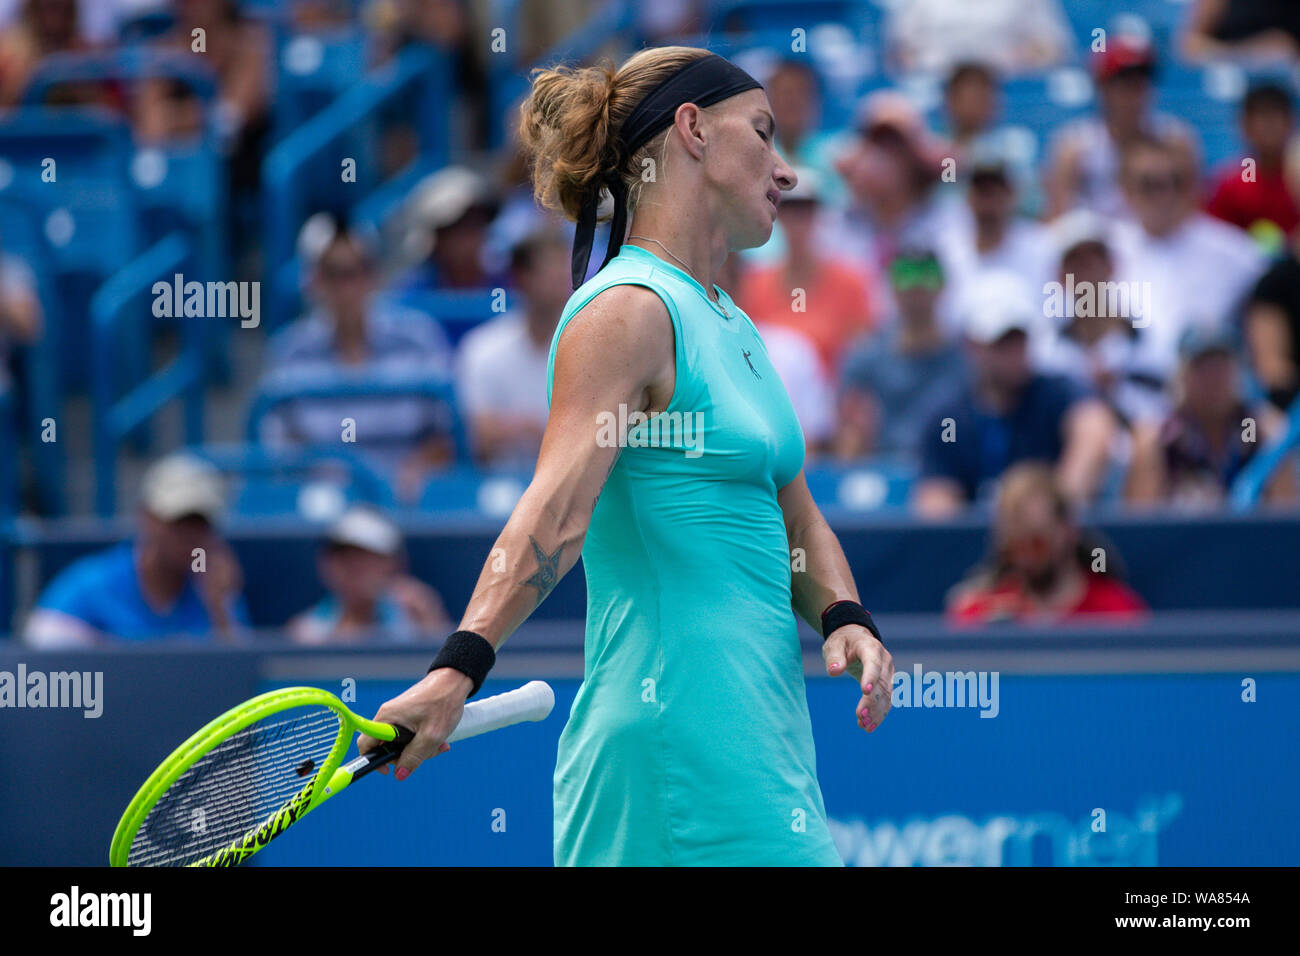 August 18, 2019, Mason, Ohio, USA: Svetlana Kuznetsova (RUS) reacts to a shot during the Women's Final of the Western and Southern Open at the Lindner Family Tennis Center, Mason, Oh. (Credit Image: © Scott Stuart/ZUMA Wire) Stock Photo